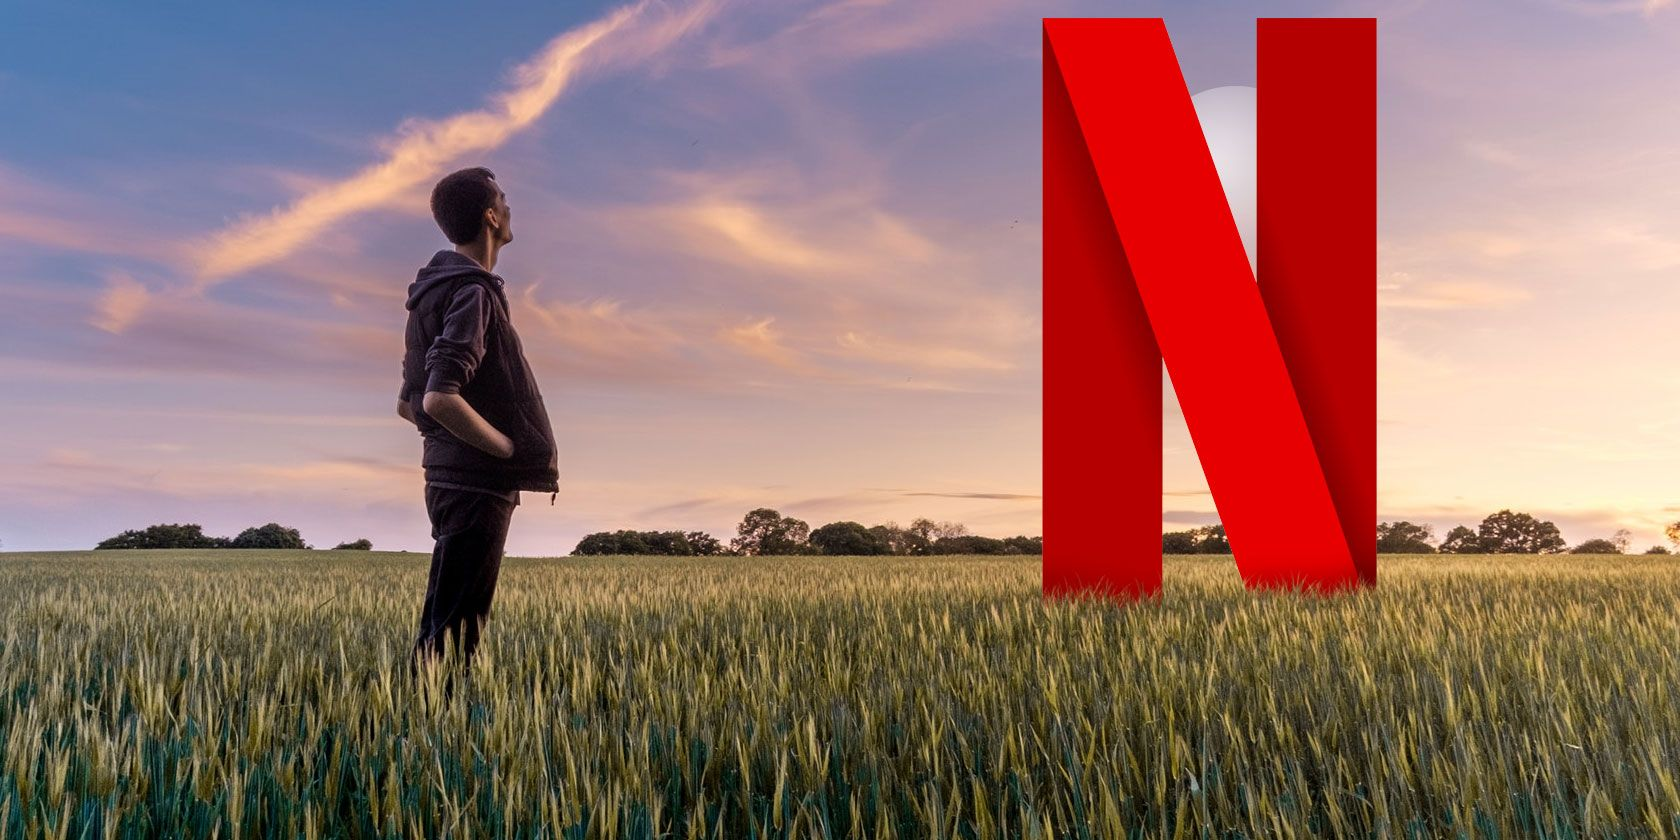 10 Inspiring Movies on Netflix That Could Change Your Life